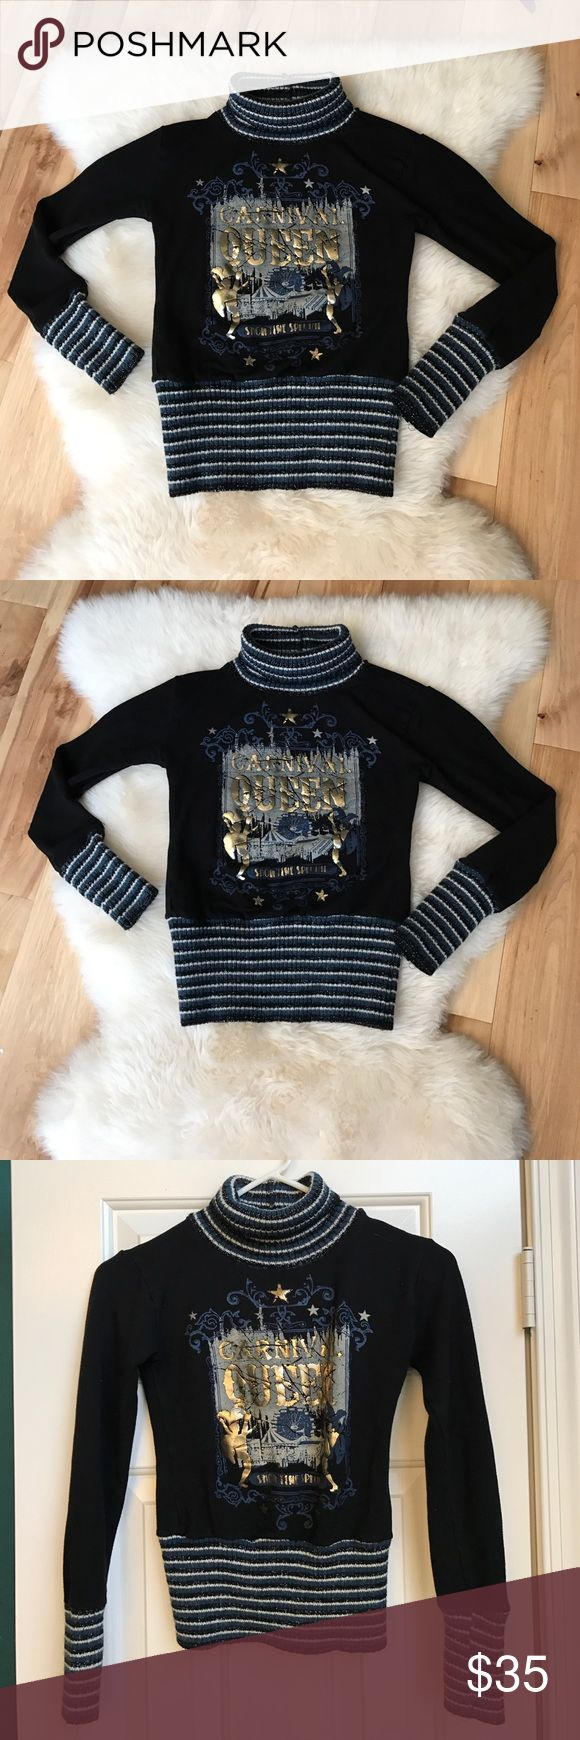 Maria Rossi cute sweater top size S or XS Cute stretchy sweater black/gold/navy size S or XS. Perfect for jeans or leggings Marie Rossi Sweaters Cowl & Turtlenecks